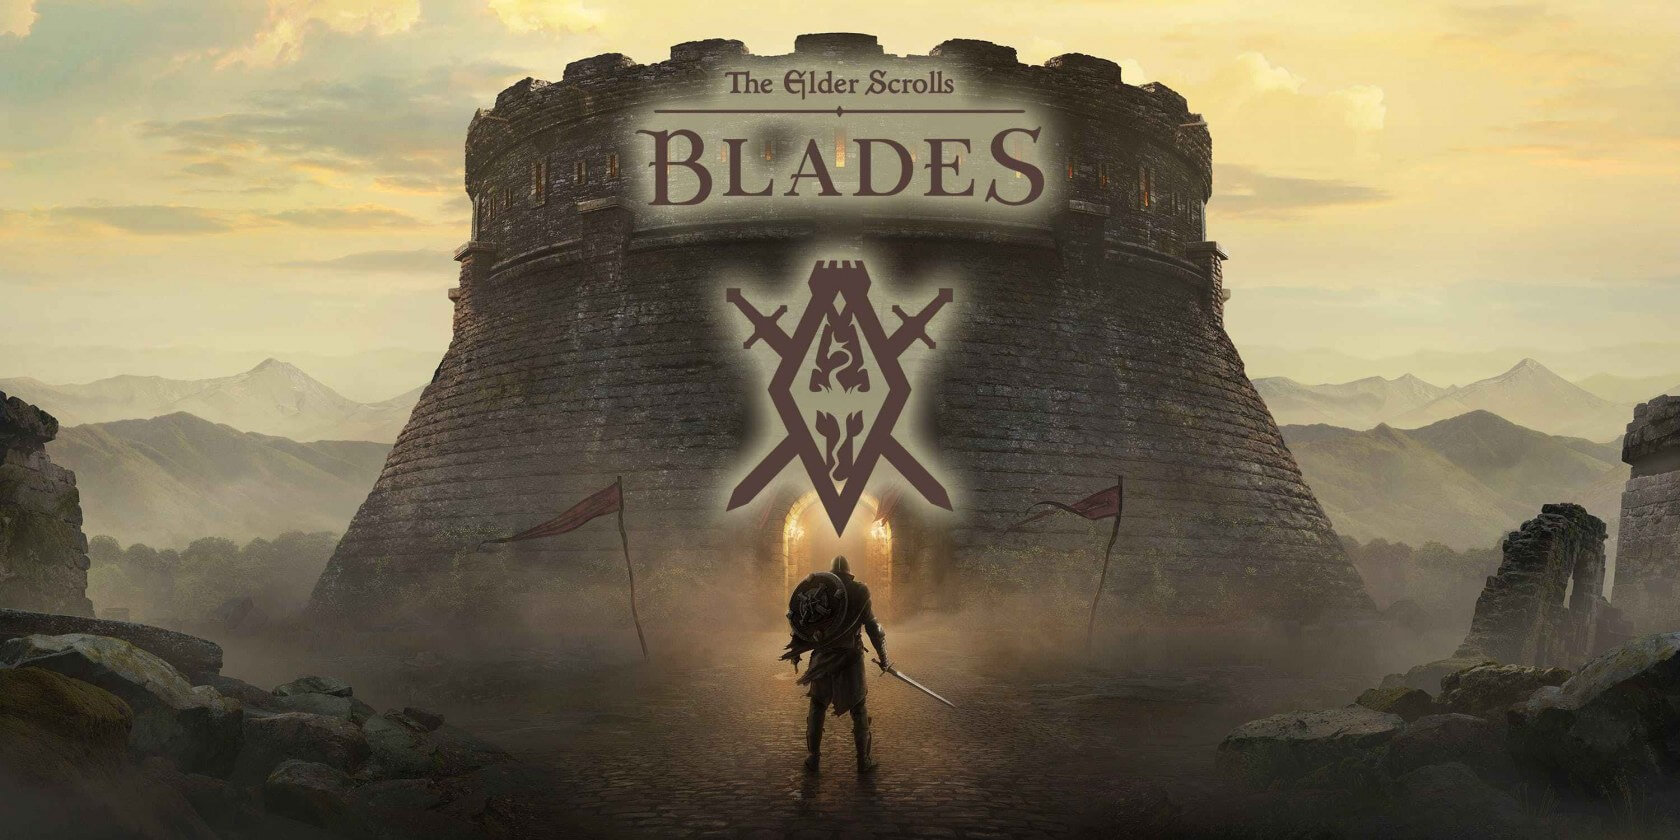 The Elder Scrolls: Blades' Is Launching Early, and Is Available to